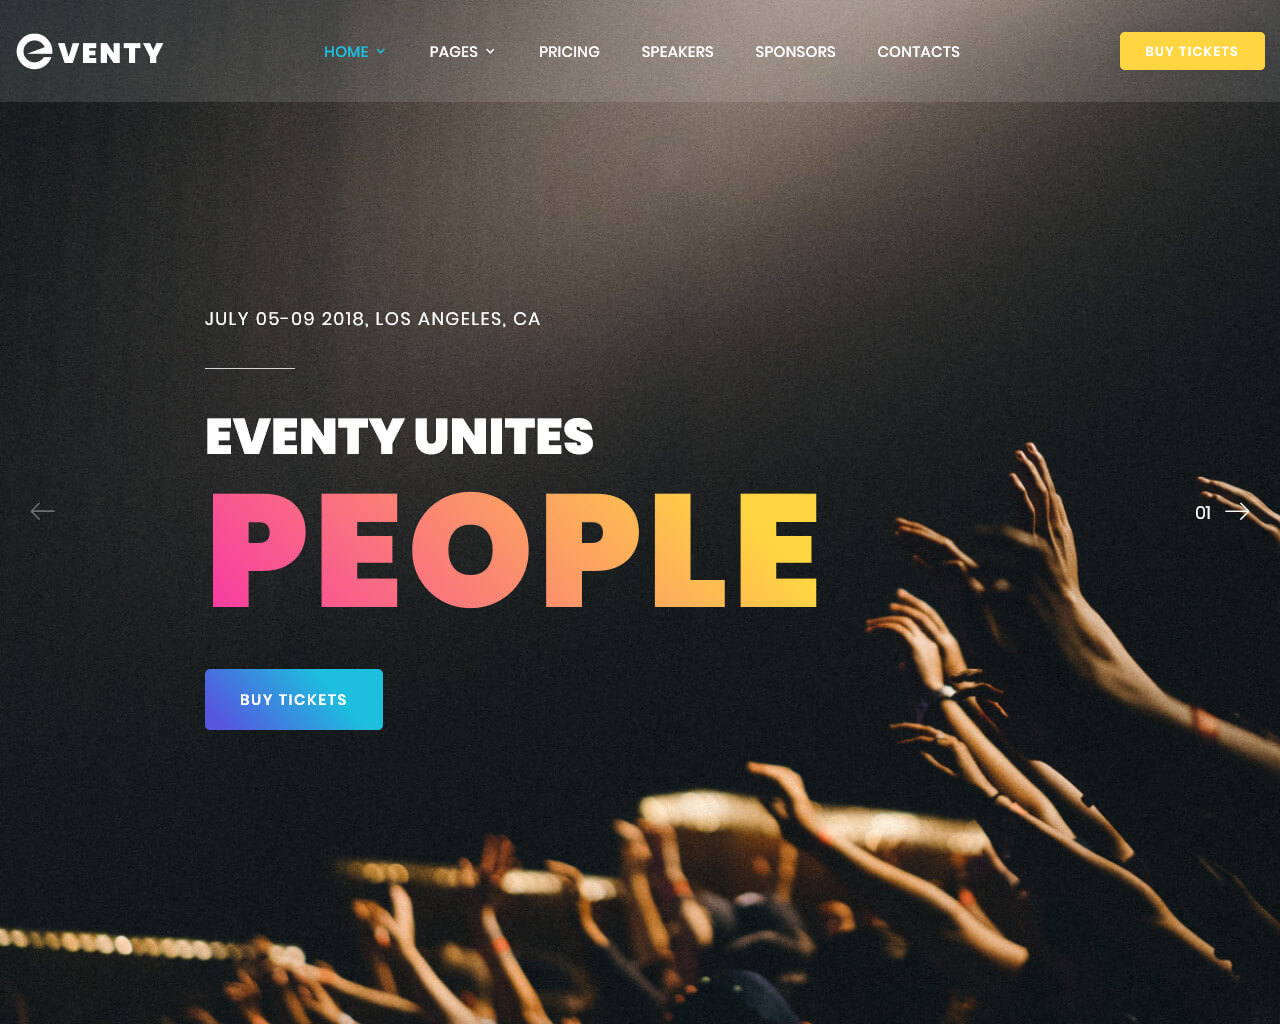 Eventy Website Template